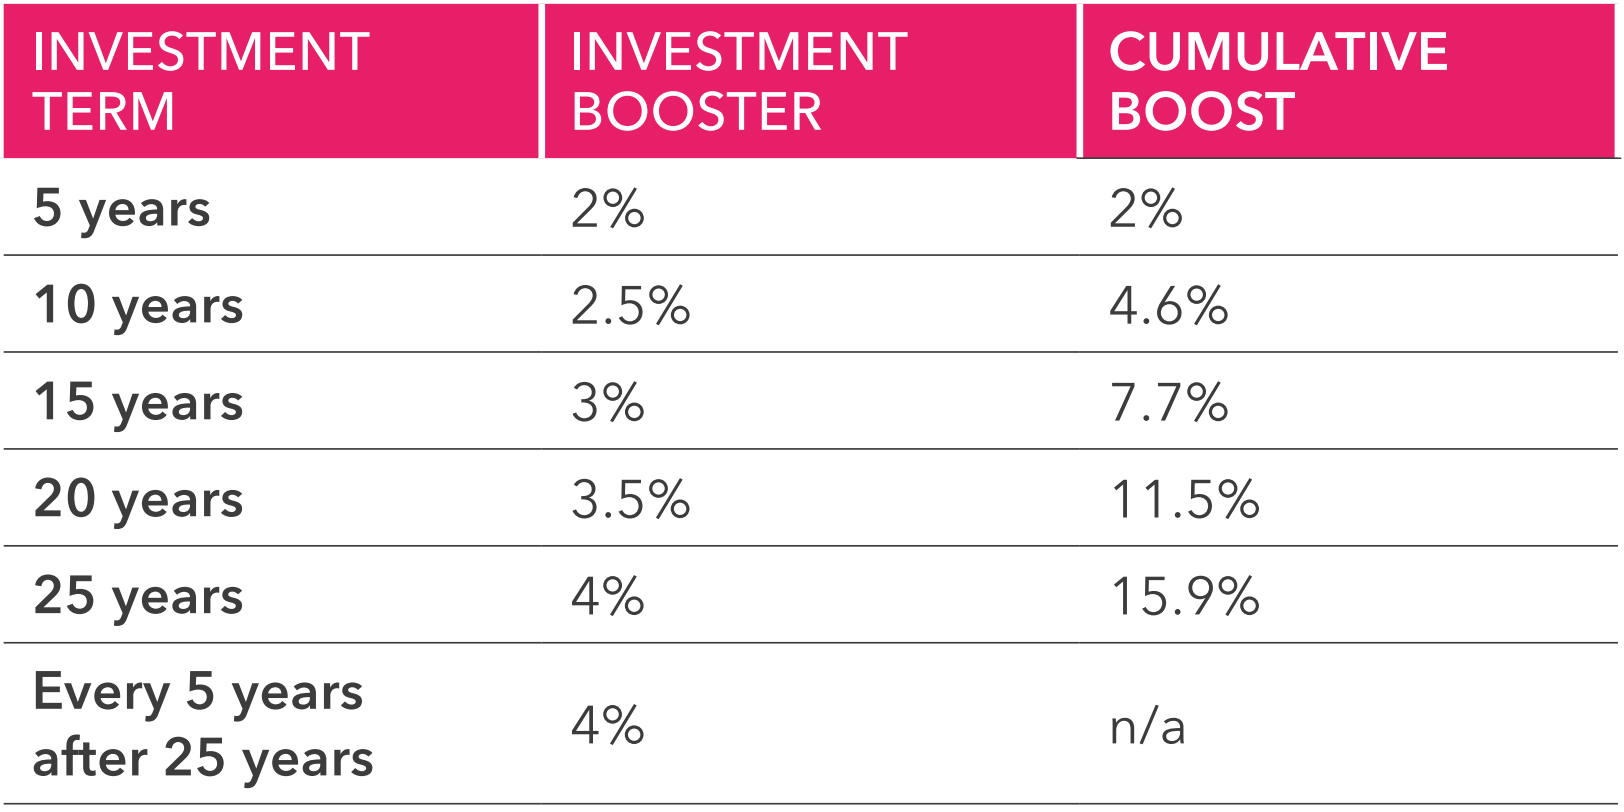 Investment Boost Chart